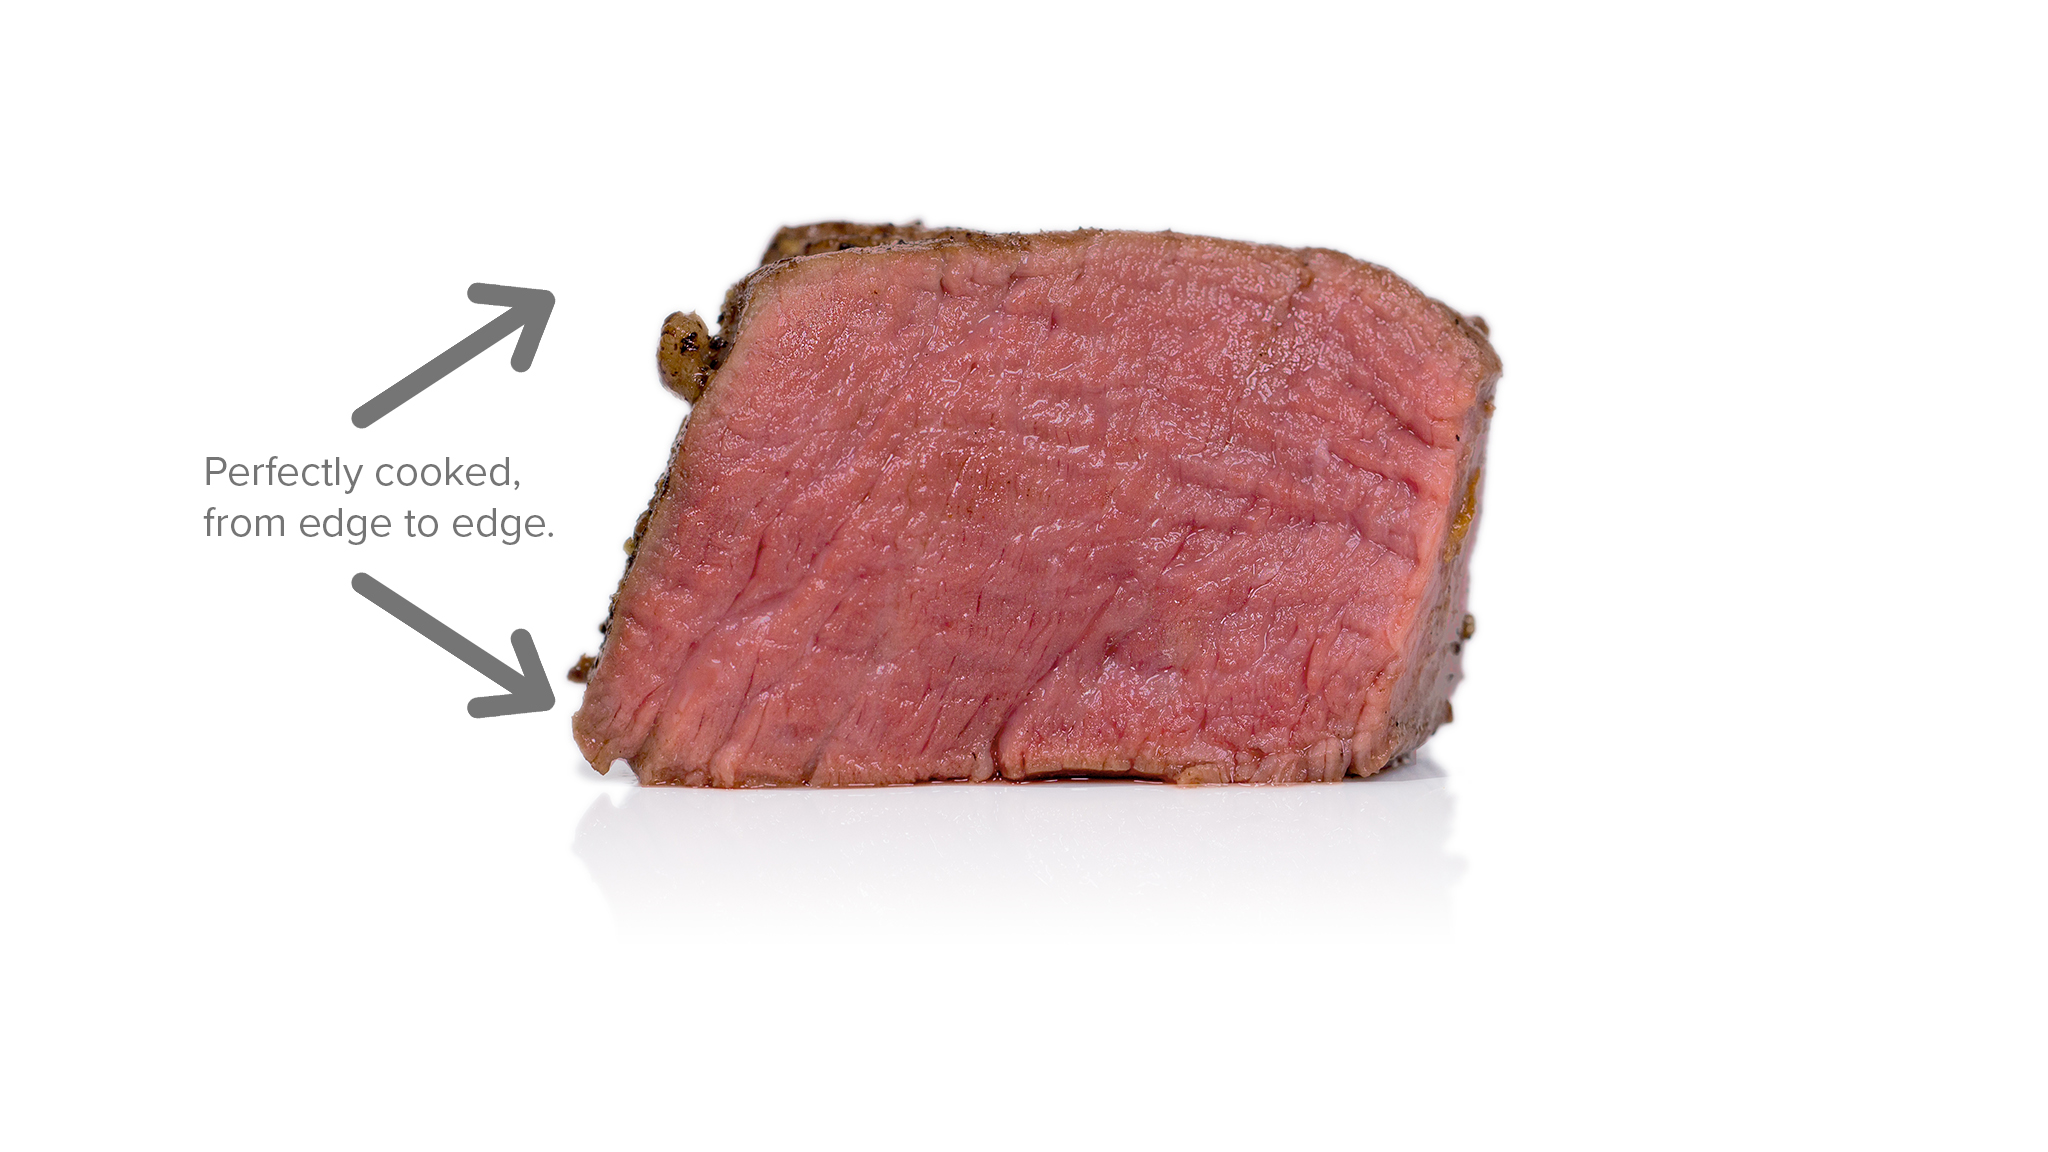 Sous_Vide_Steak.jpg